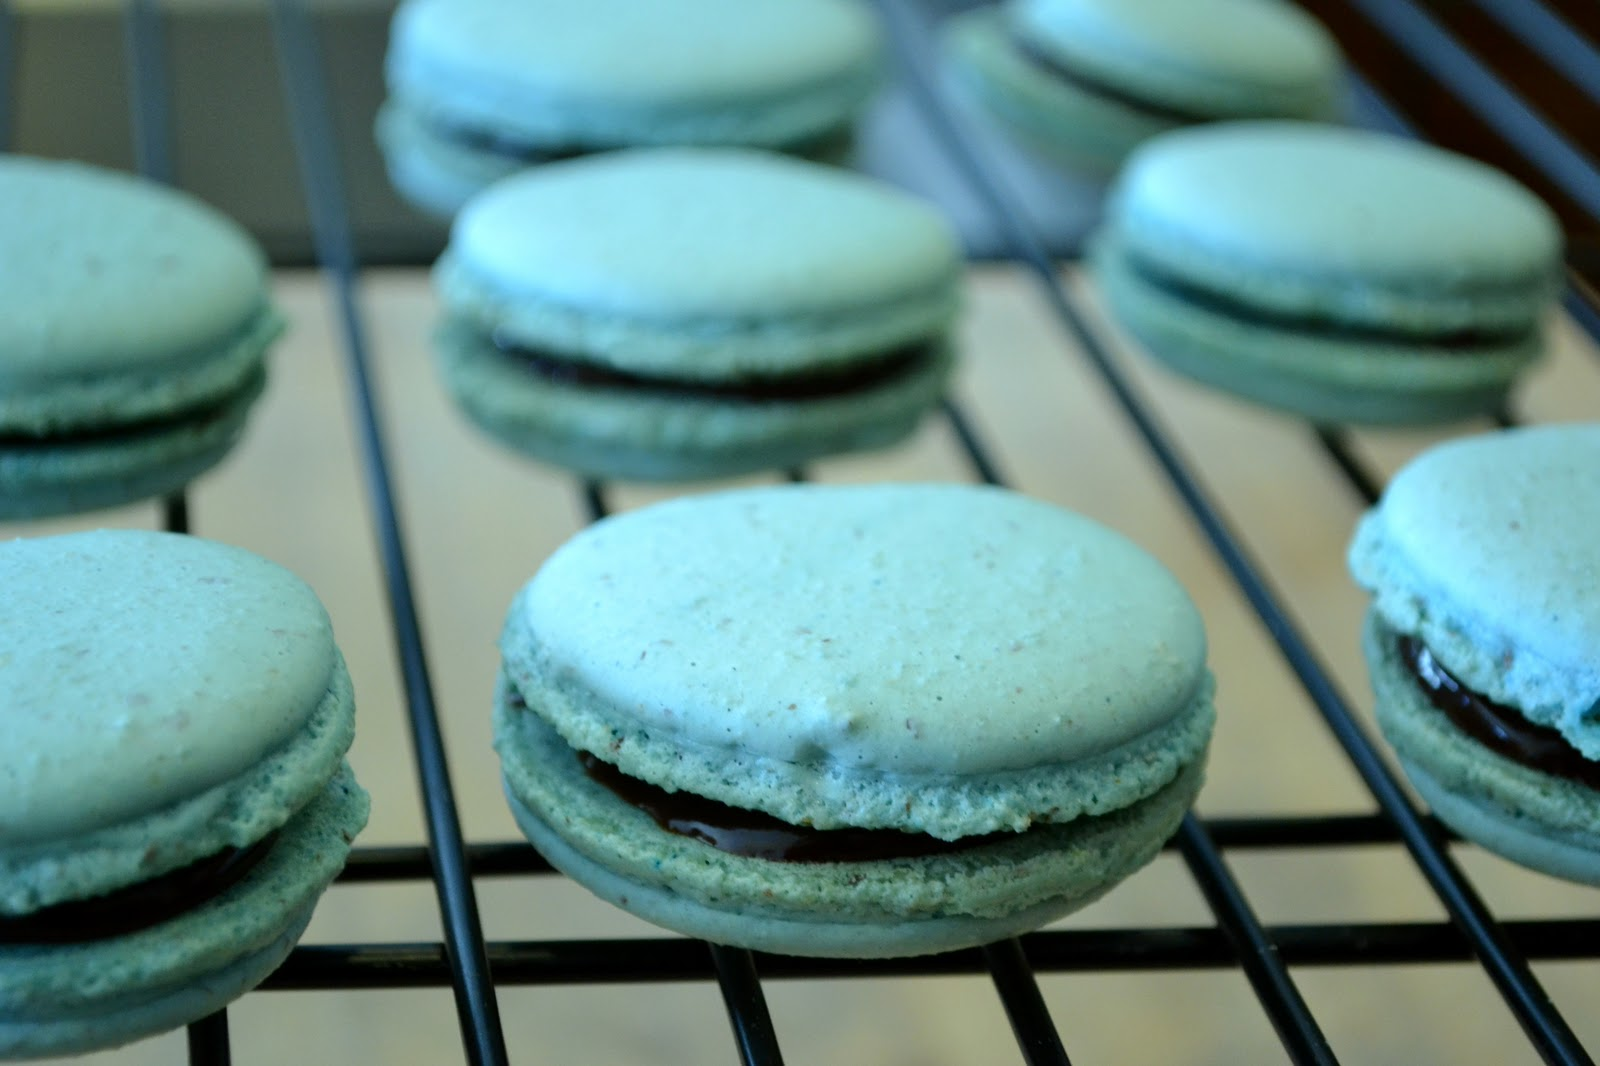 Lawyer Loves Lunch: How To Make Macarons